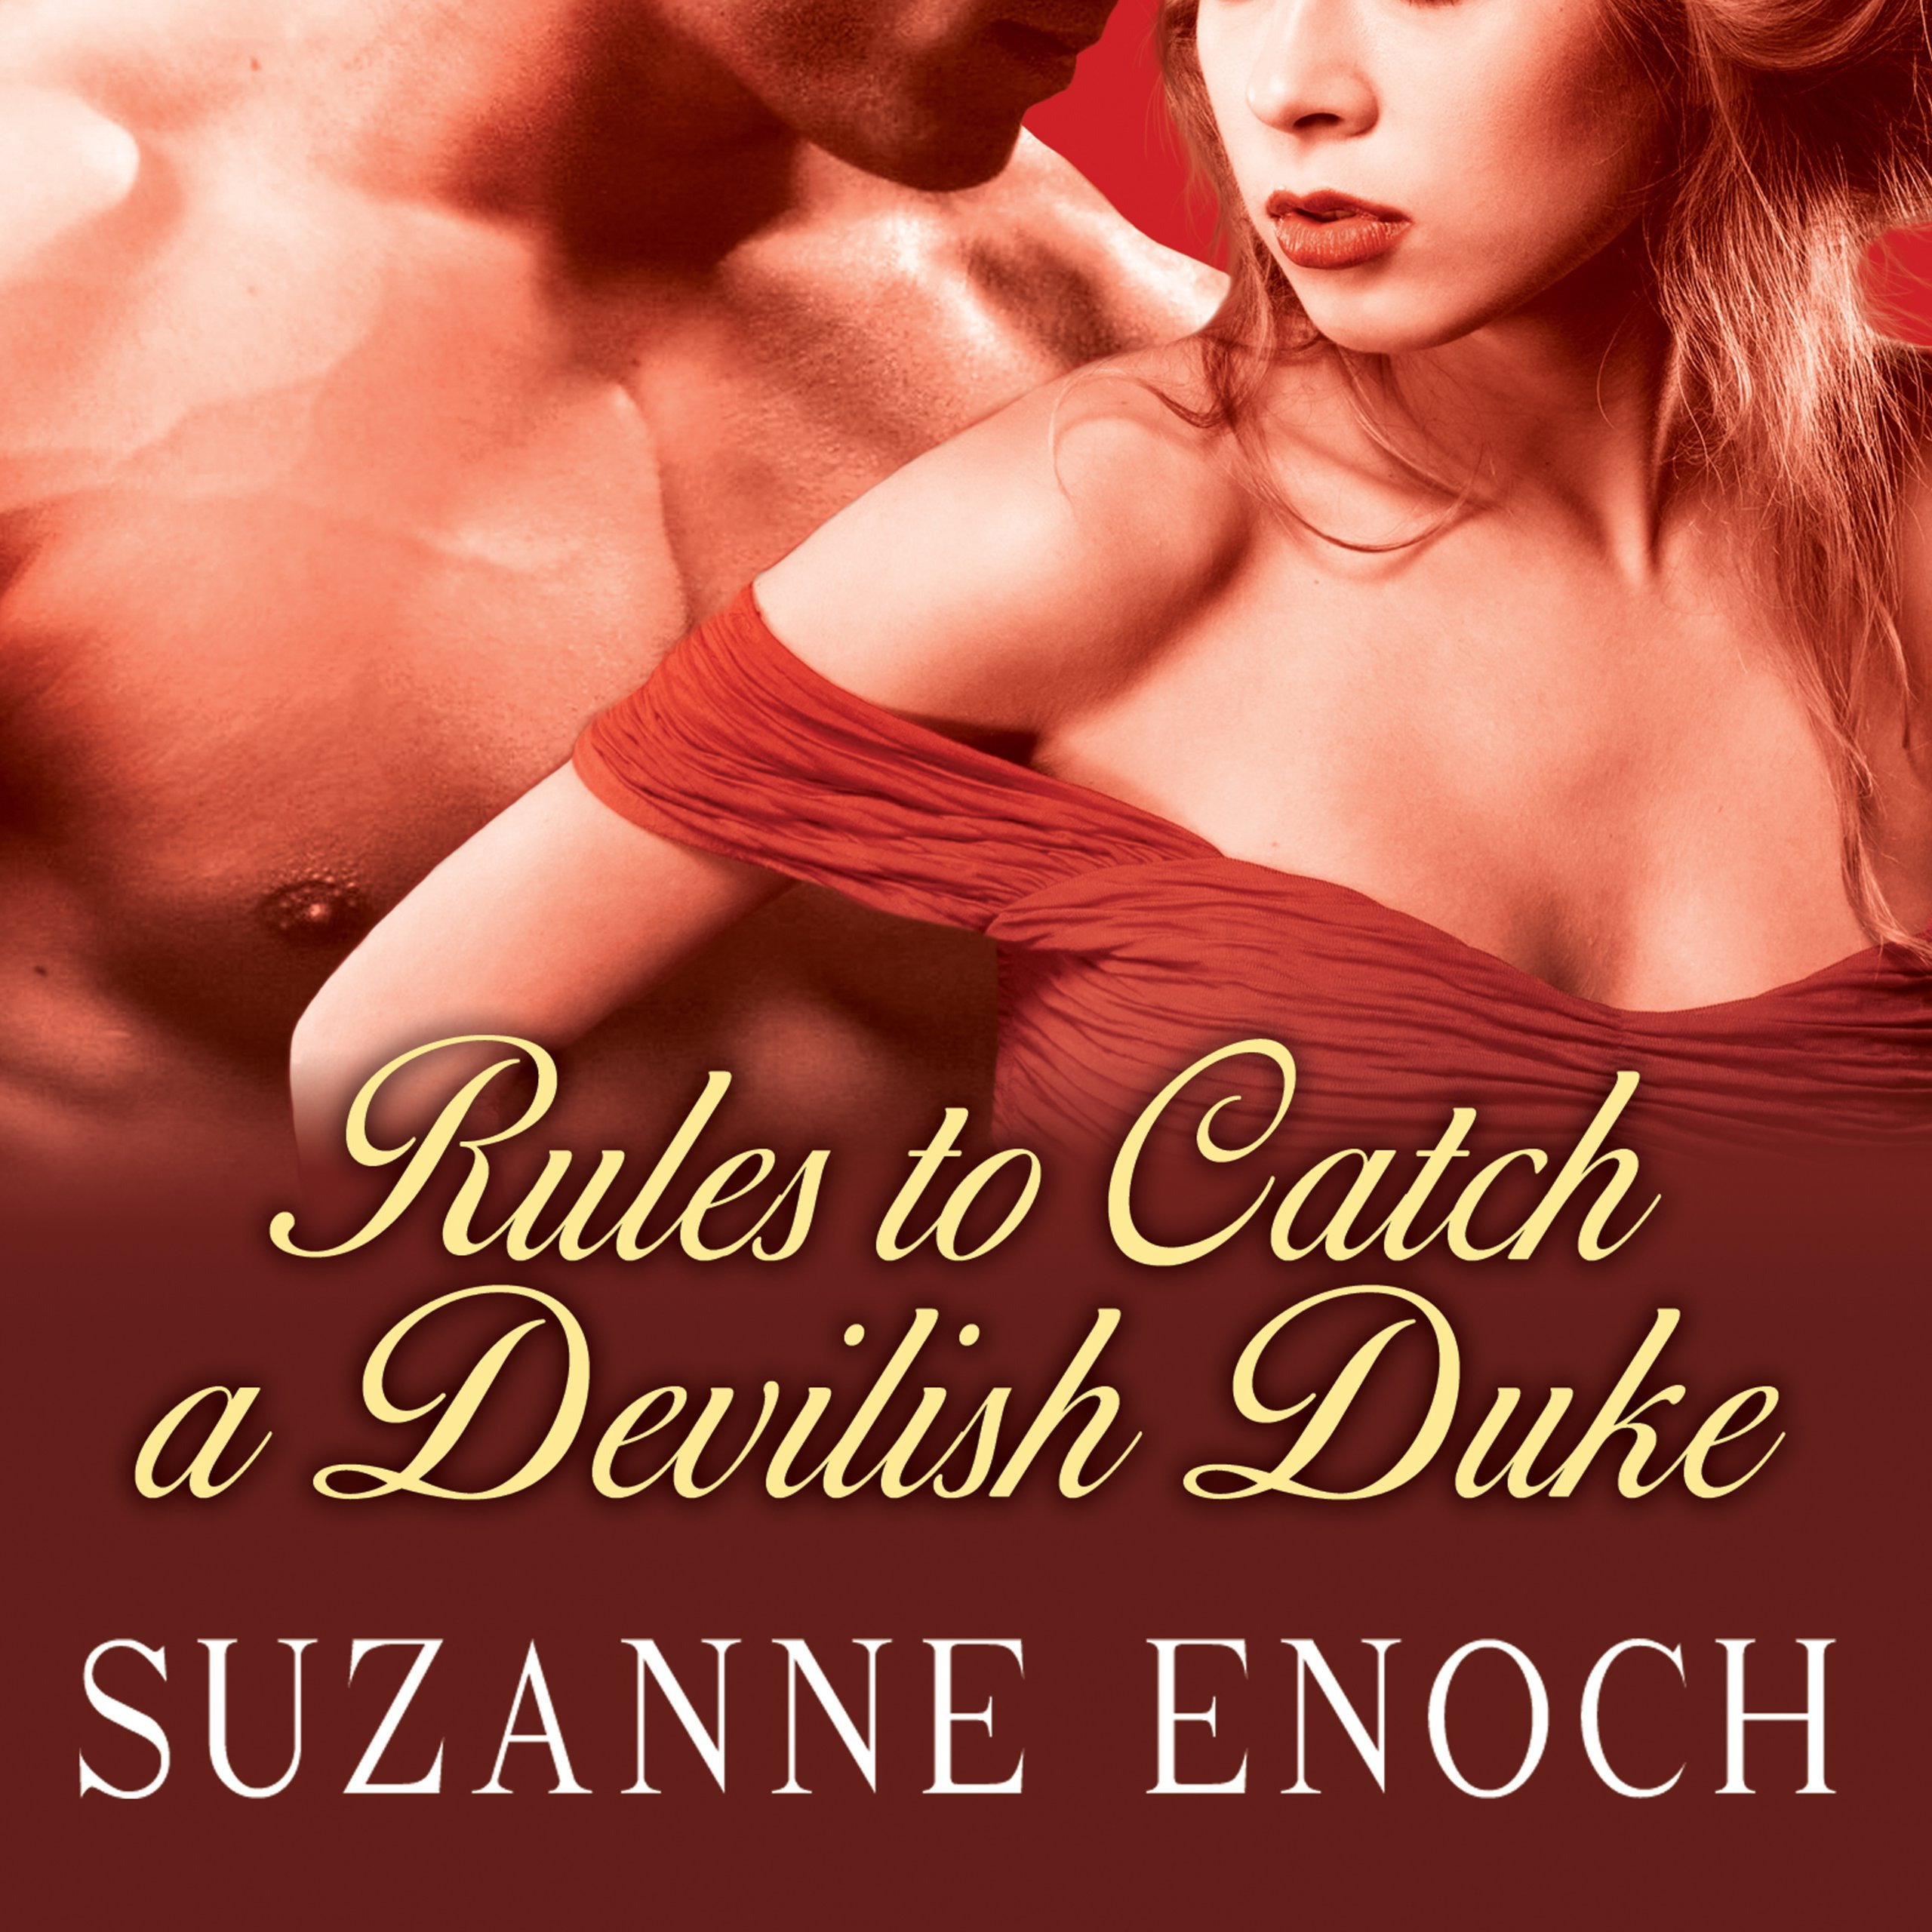 Printable Rules to Catch a Devilish Duke Audiobook Cover Art